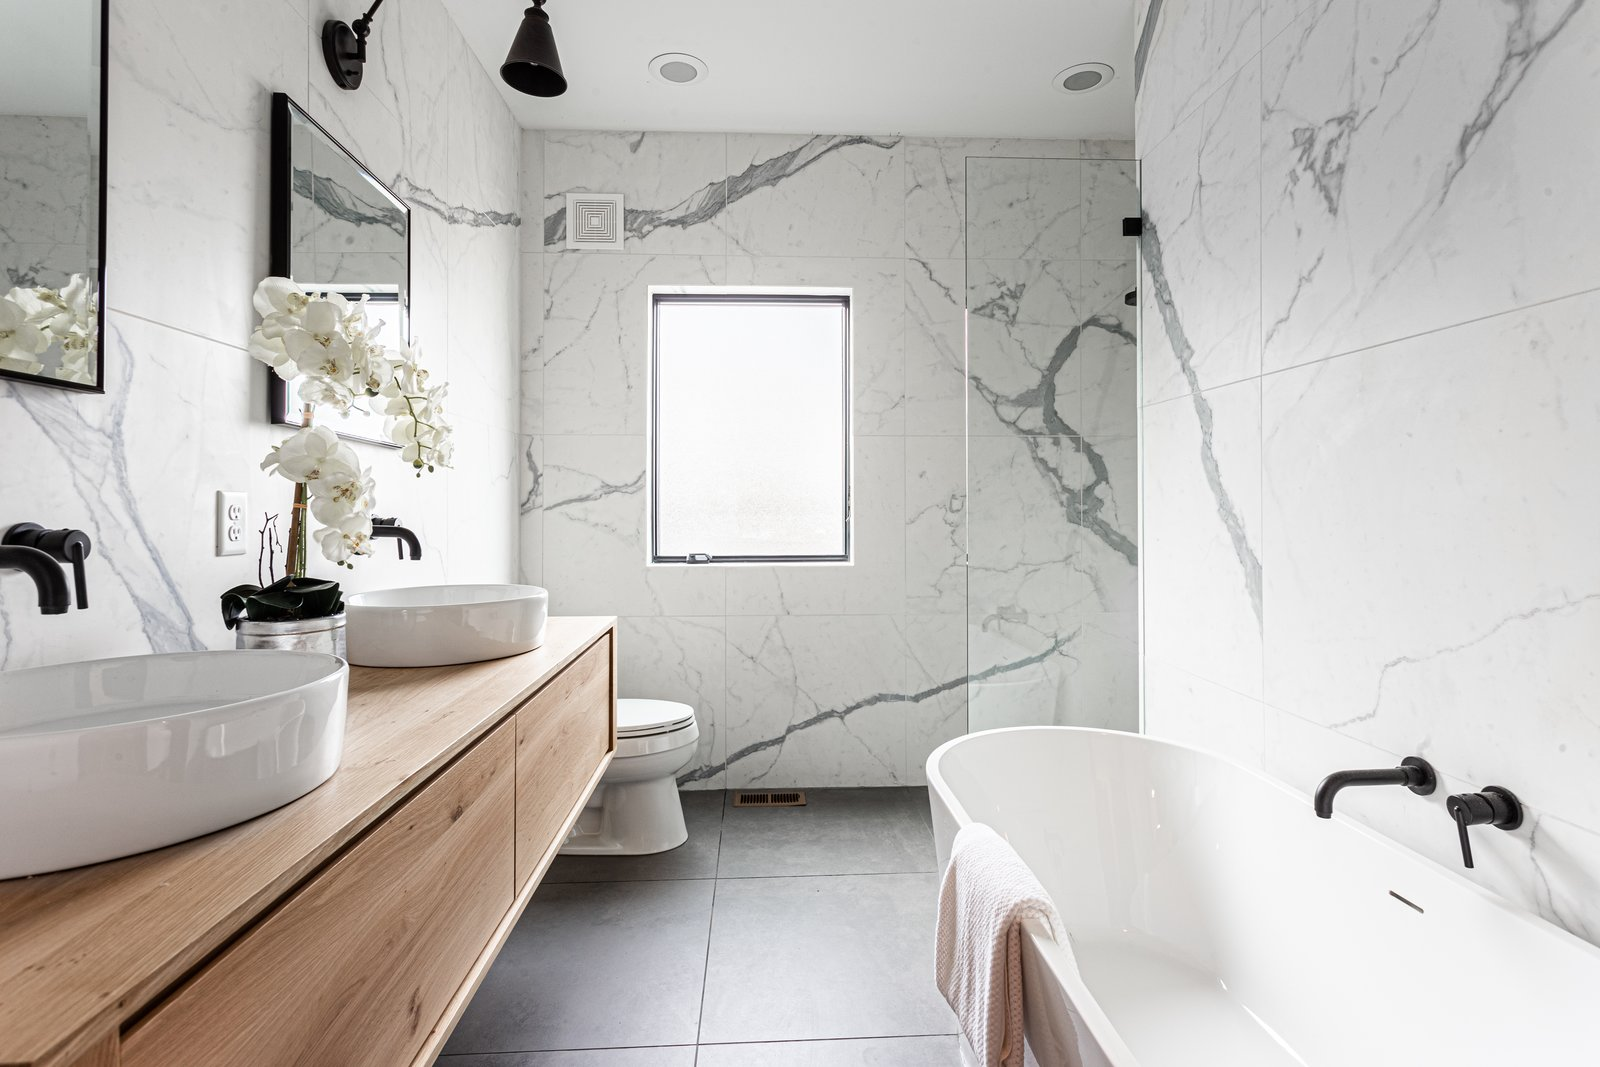 Bath Room, One Piece Toilet, Open Shower, Stone Tile Wall, Wall Lighting, Freestanding Tub, Vessel Sink, Wood Counter, and Recessed Lighting  Bathrooms